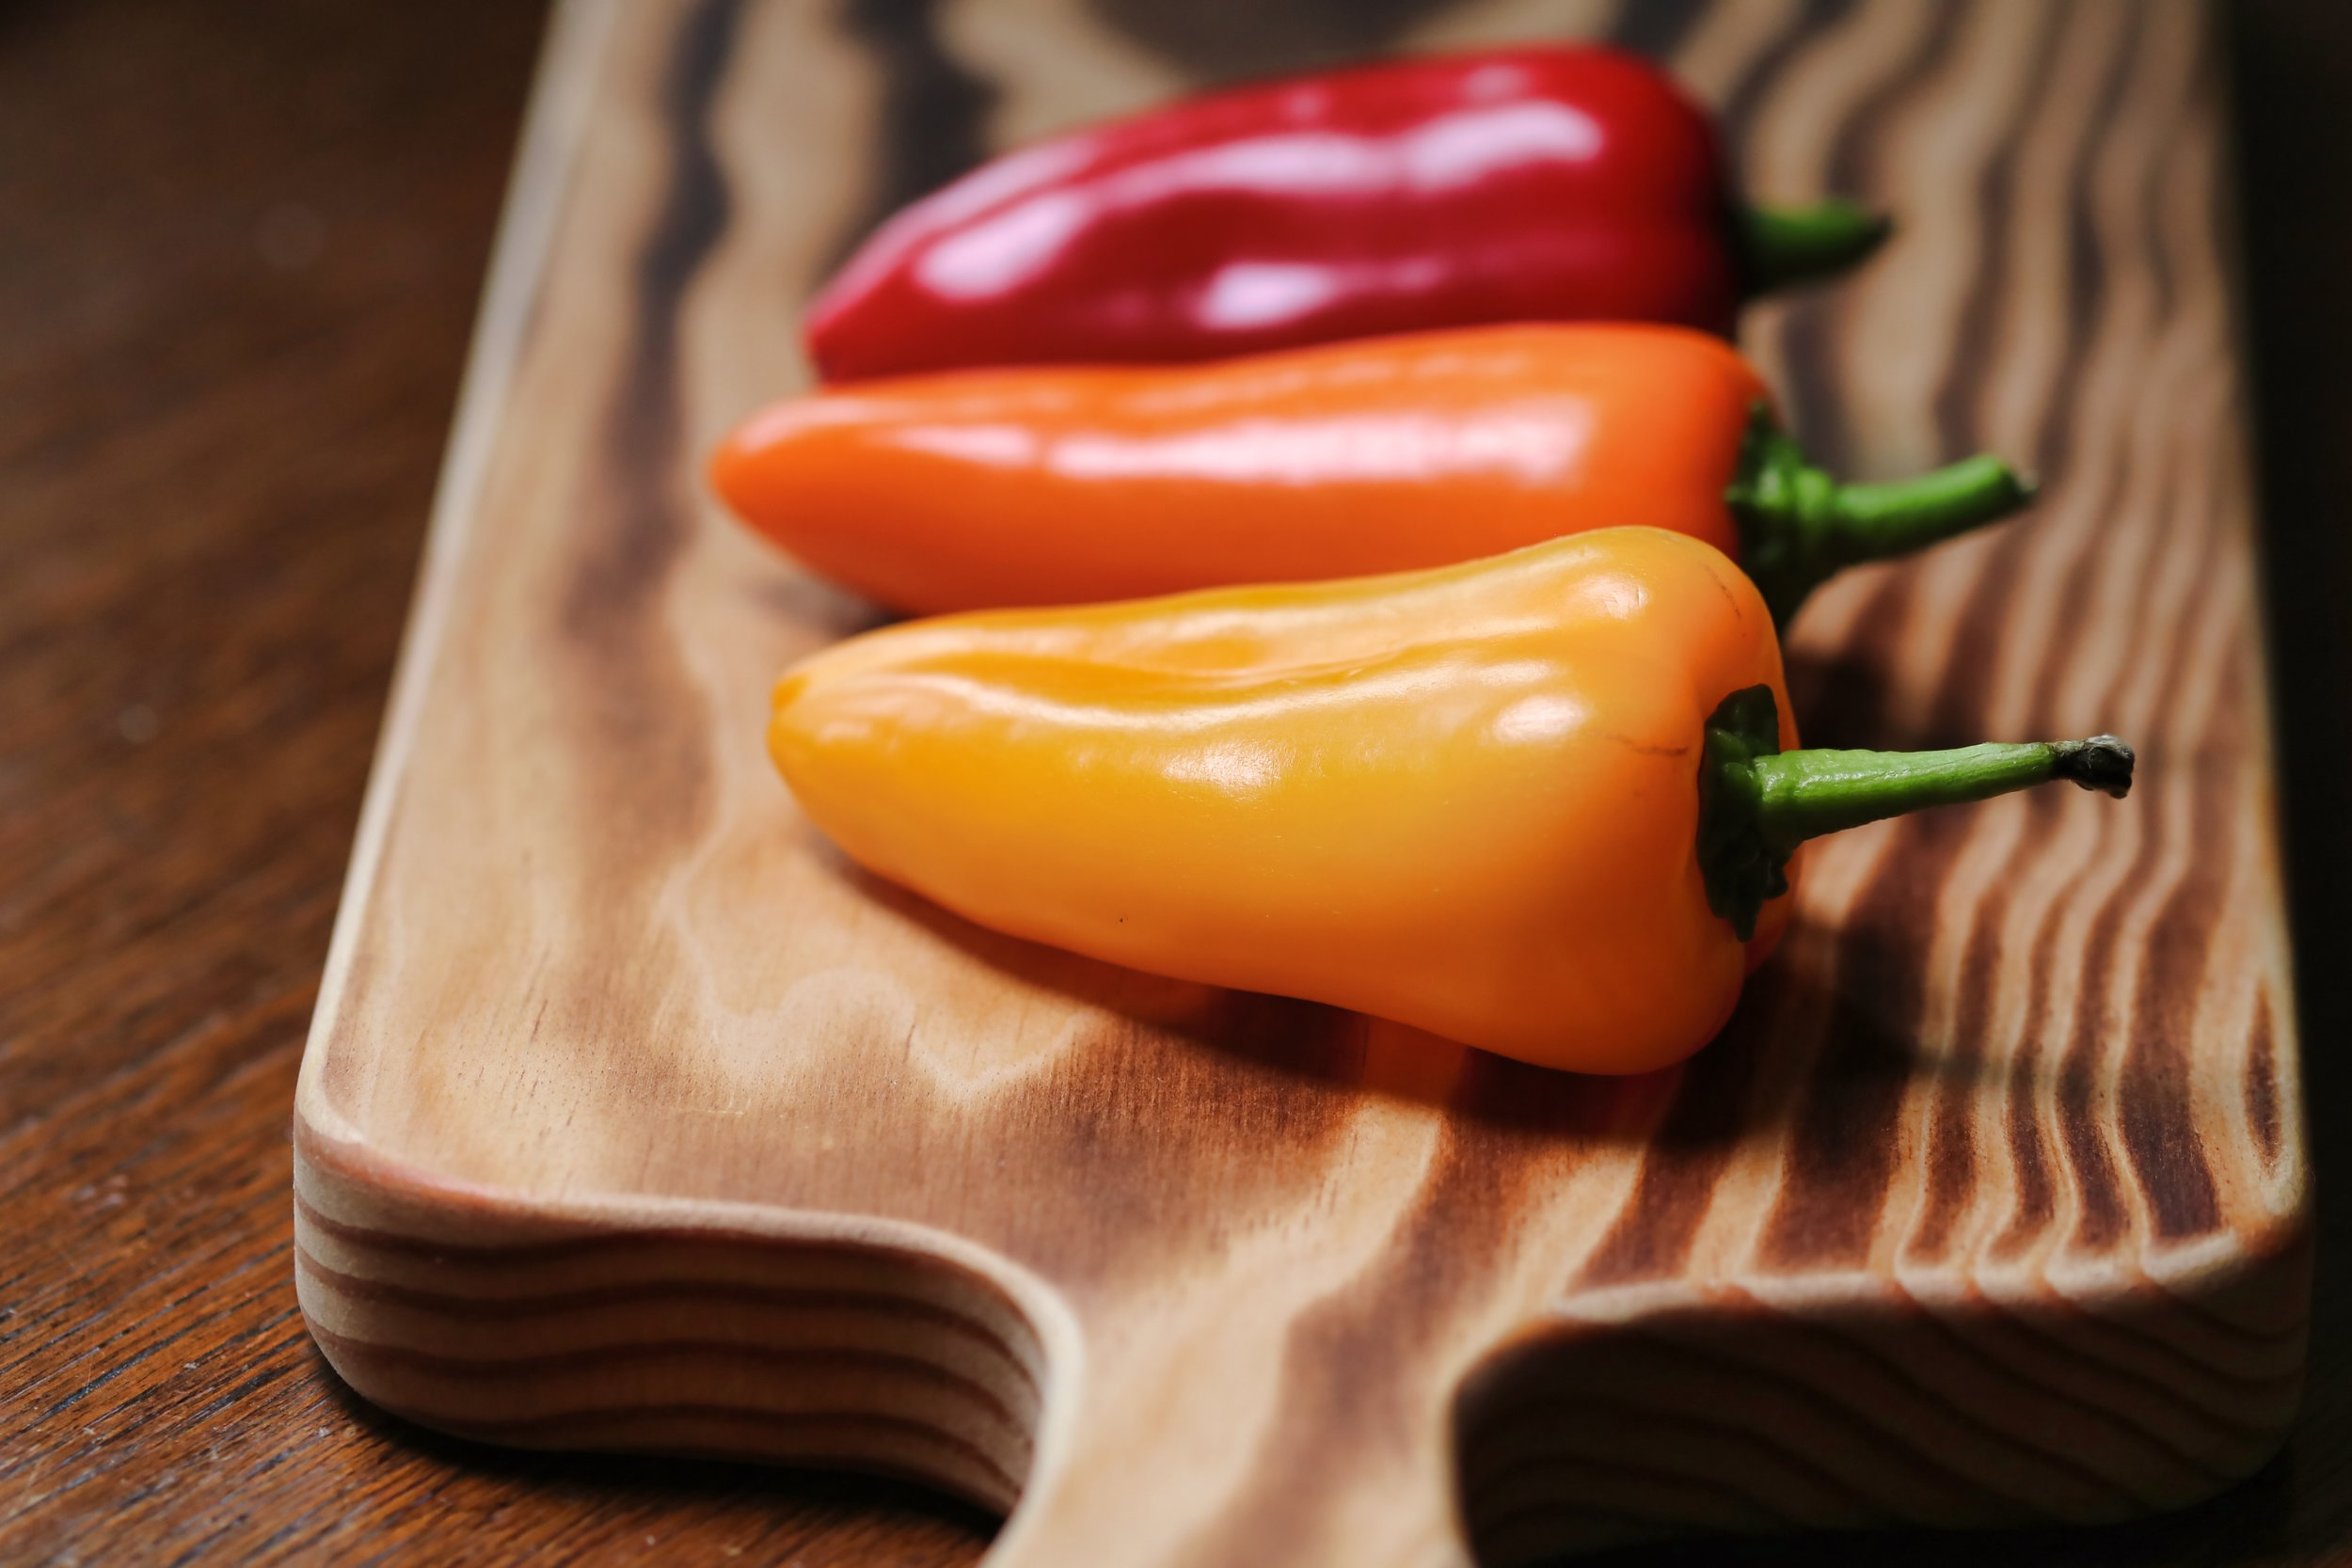 bell-peppers-chili-colors-1274670.jpg